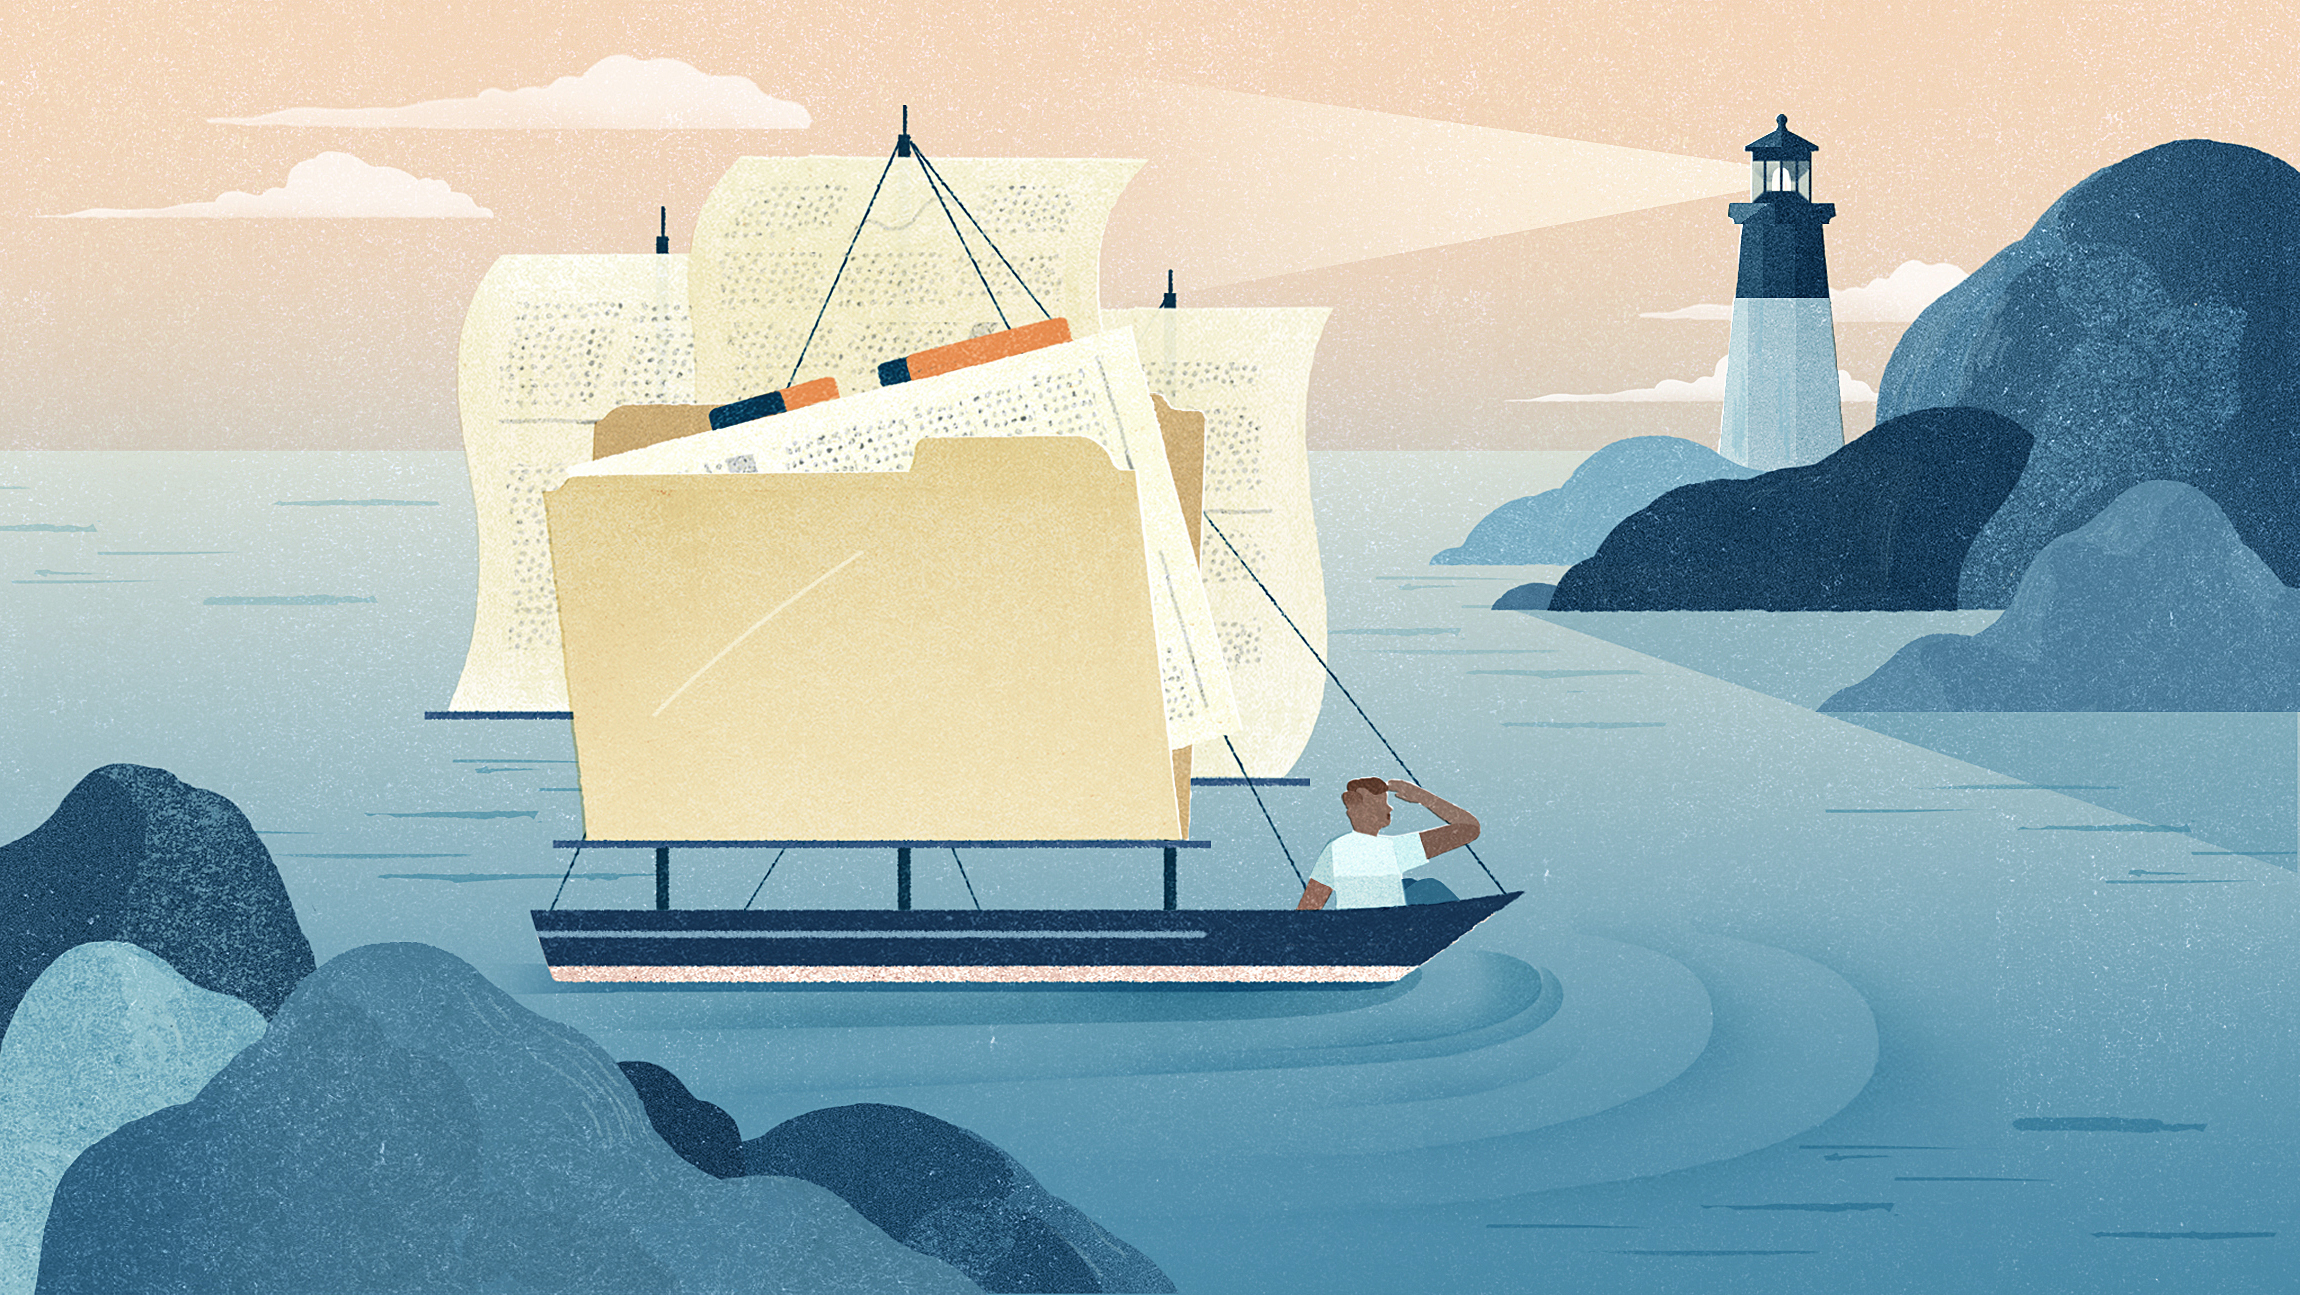 Illustration of a sailboat. The sails are made of a manila folder and papers.